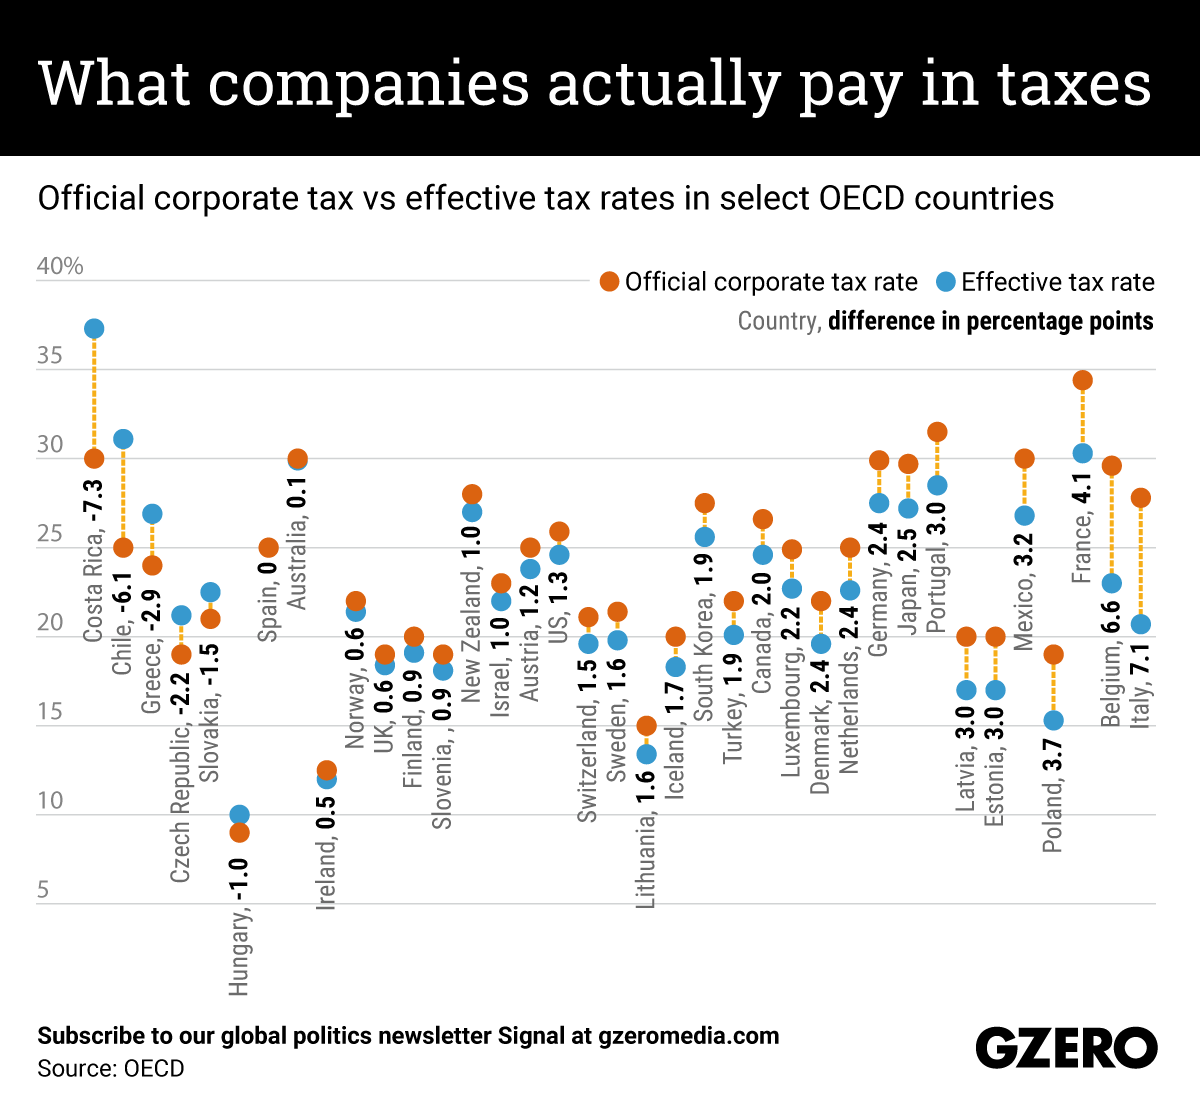 The Graphic Truth: What companies actually pay in taxes